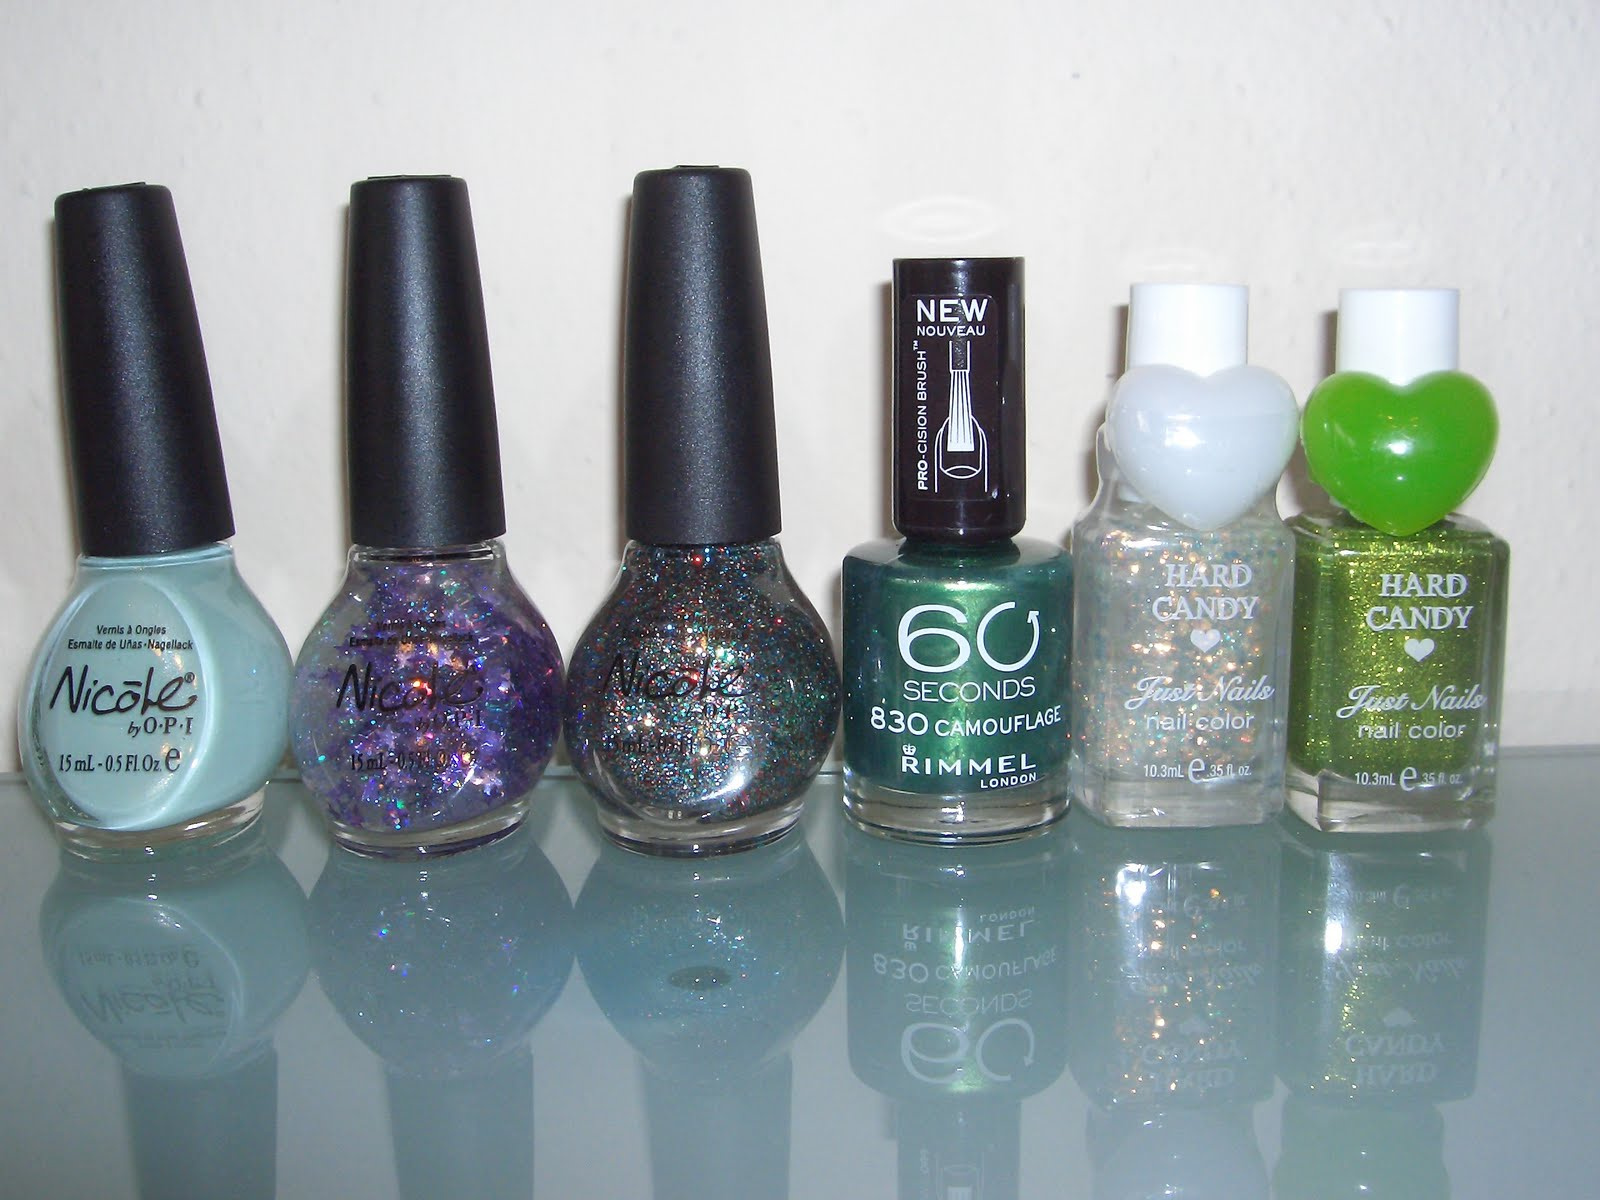 Nail Polish Obsession: New haul and swaps!